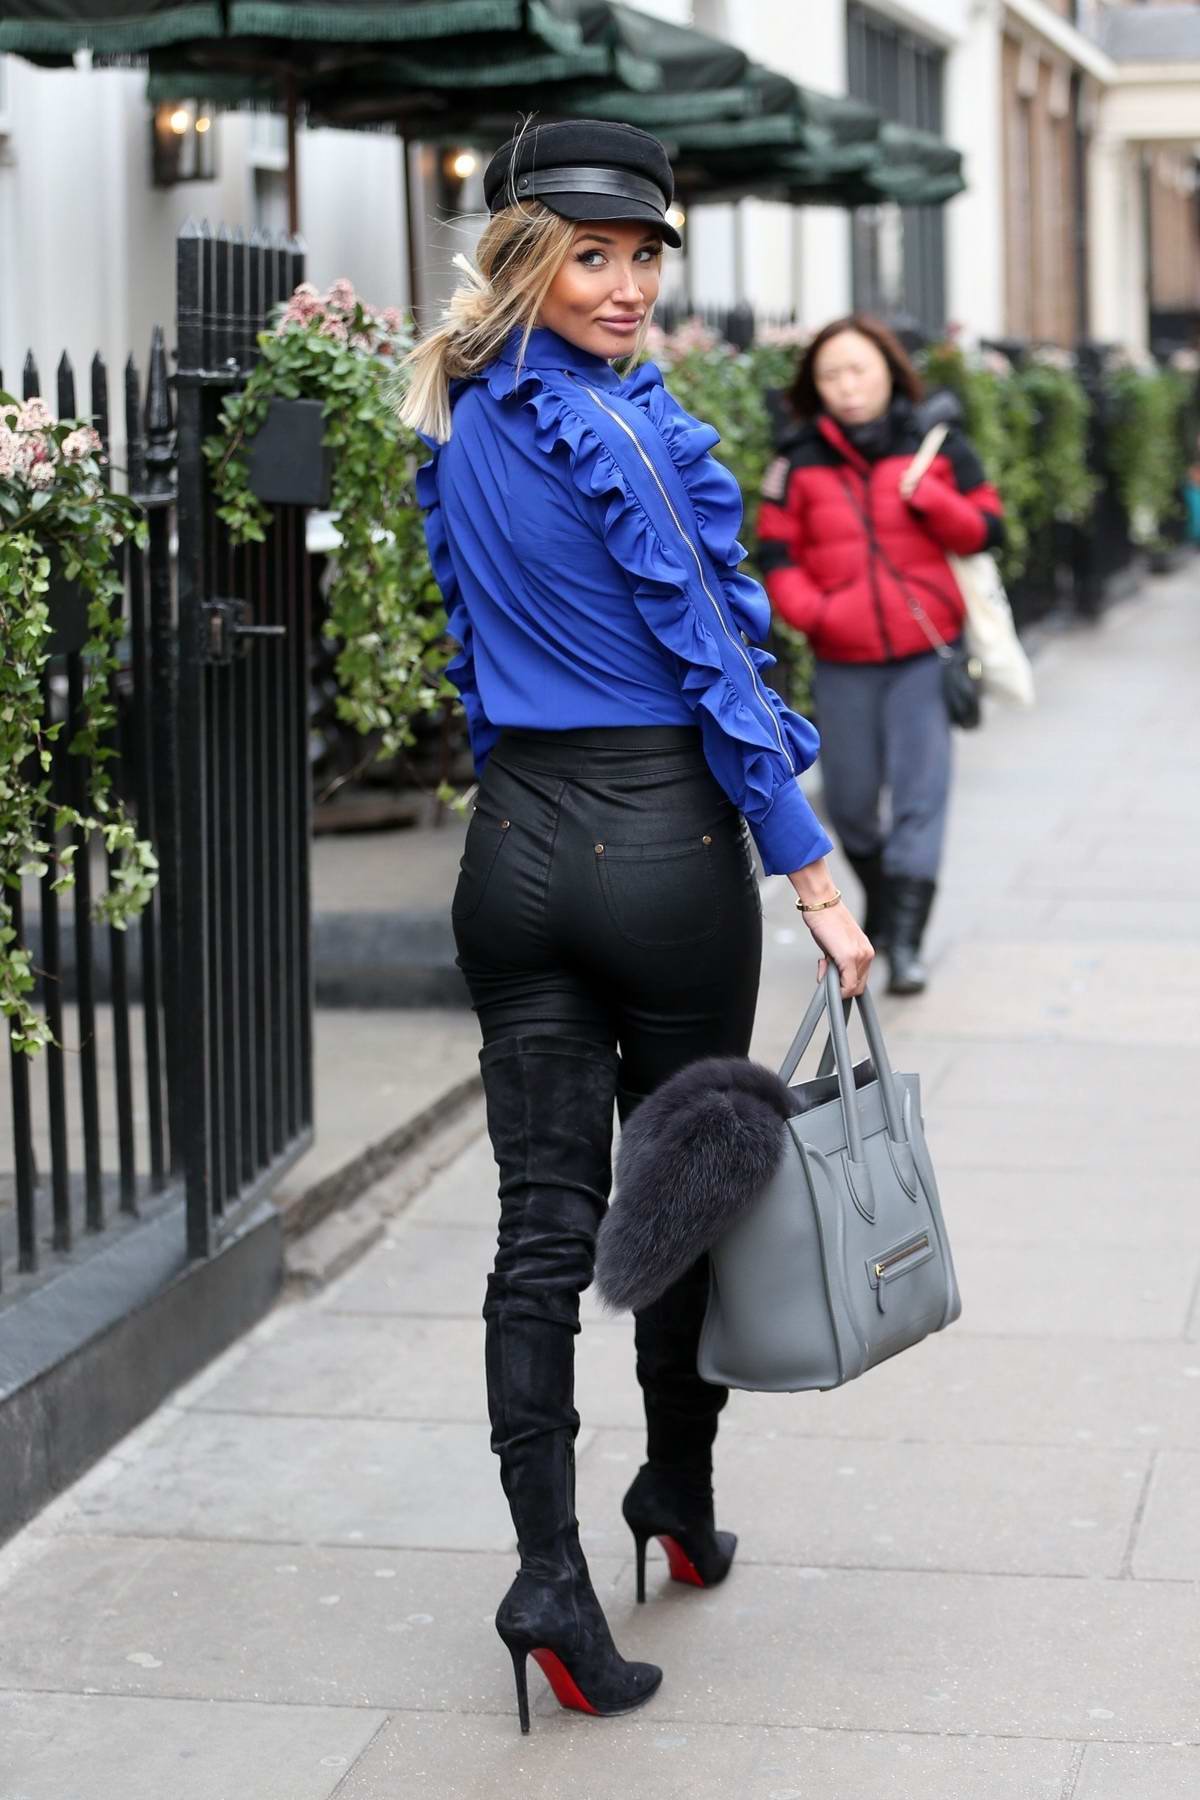 Megan McKenna seen wearing a blue silk shirt and black leather pants while out for a business meeting in Soho, London, UK